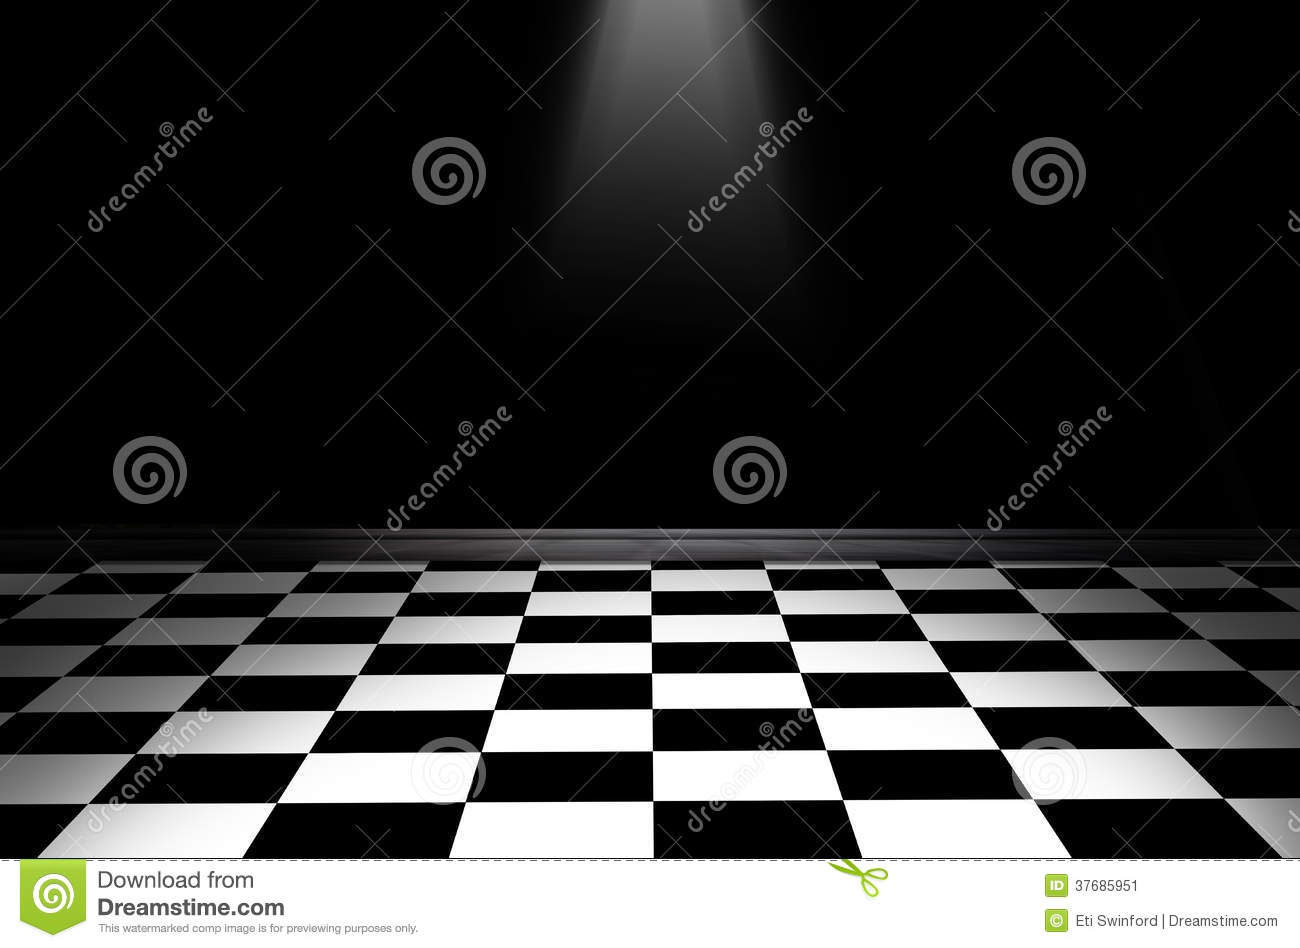 Seamless black and white checkered texture stock images image - Black And White Checkered Floor Stock Image